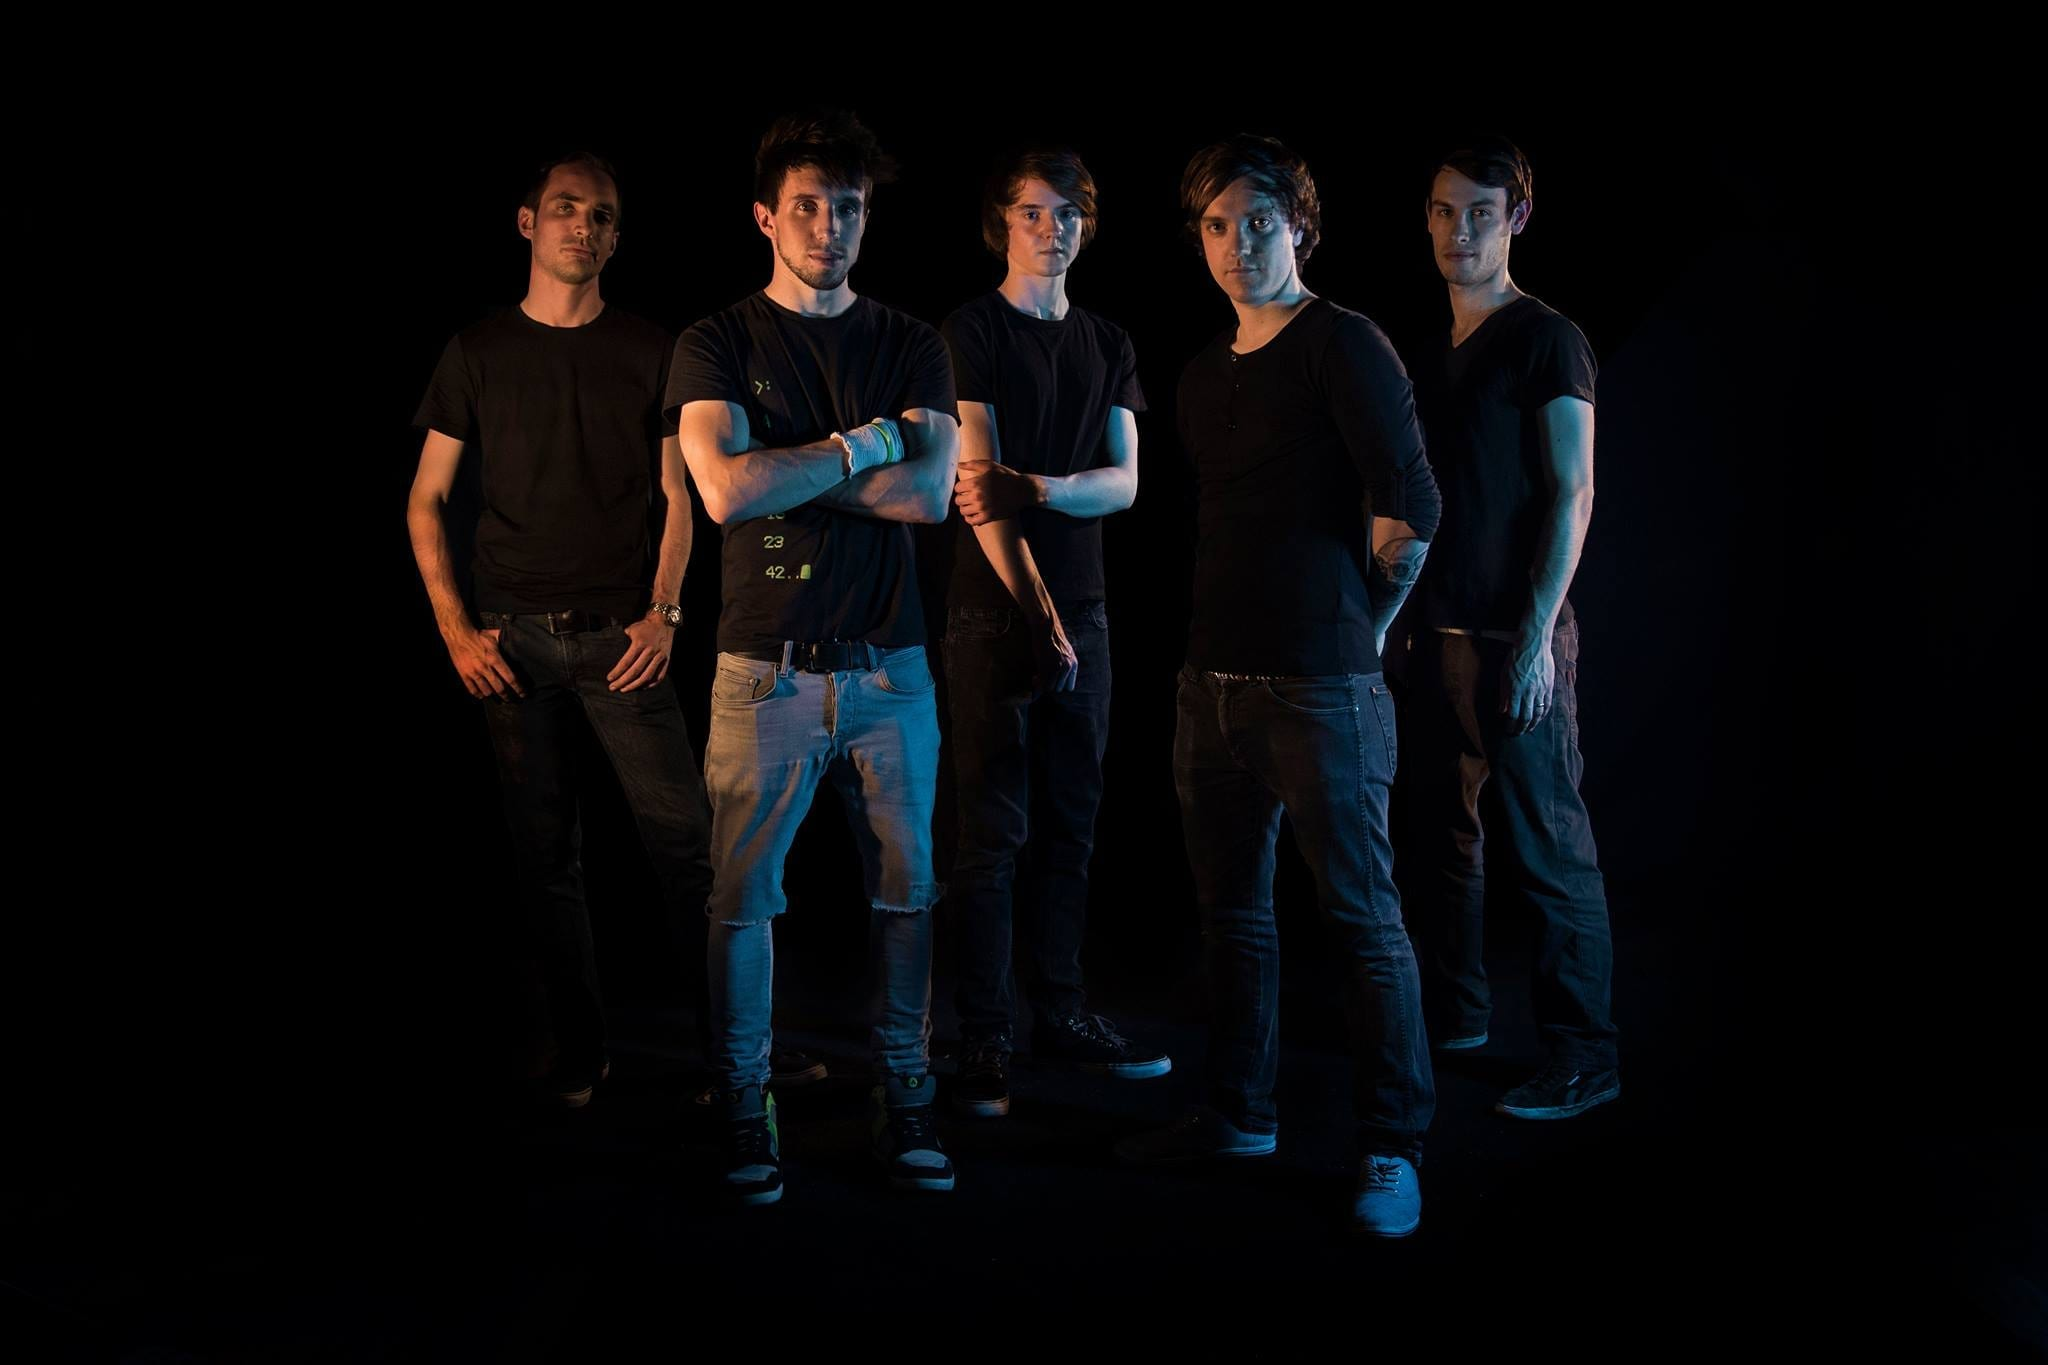 Album Review: Anonymity // You Win Again Gravity